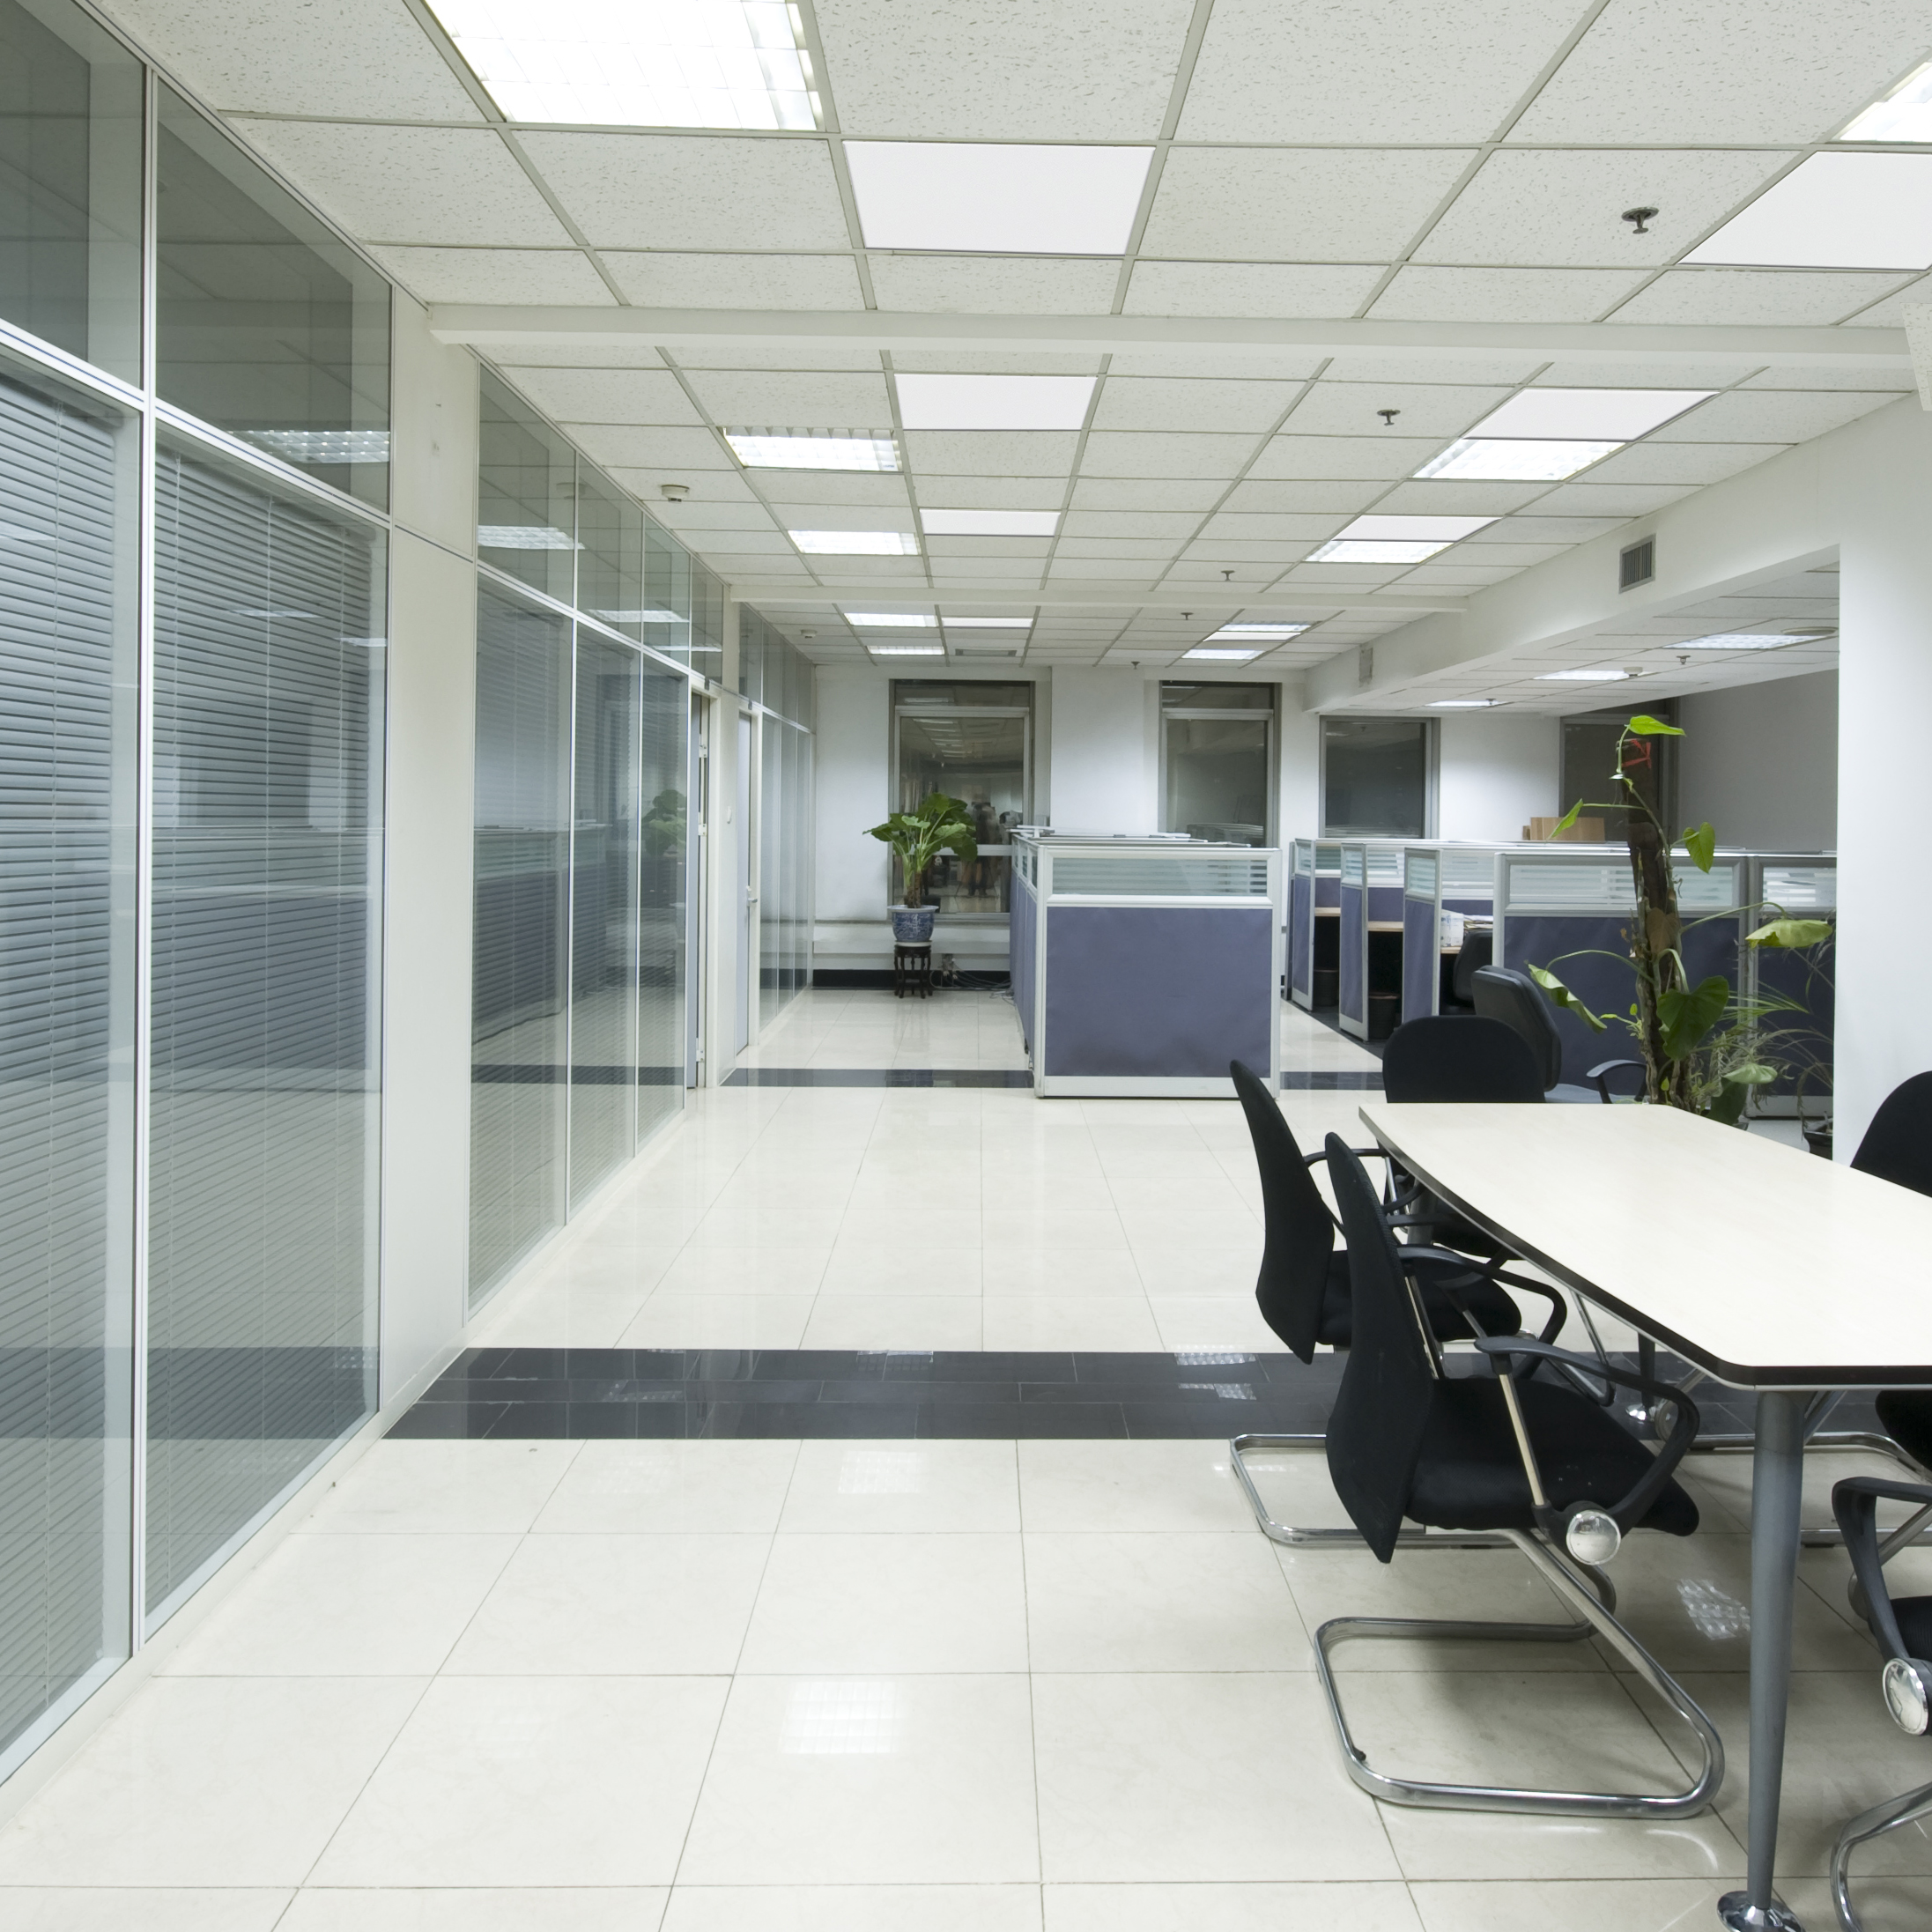 Cold Office Time To Consider Herschel Infrared Heating